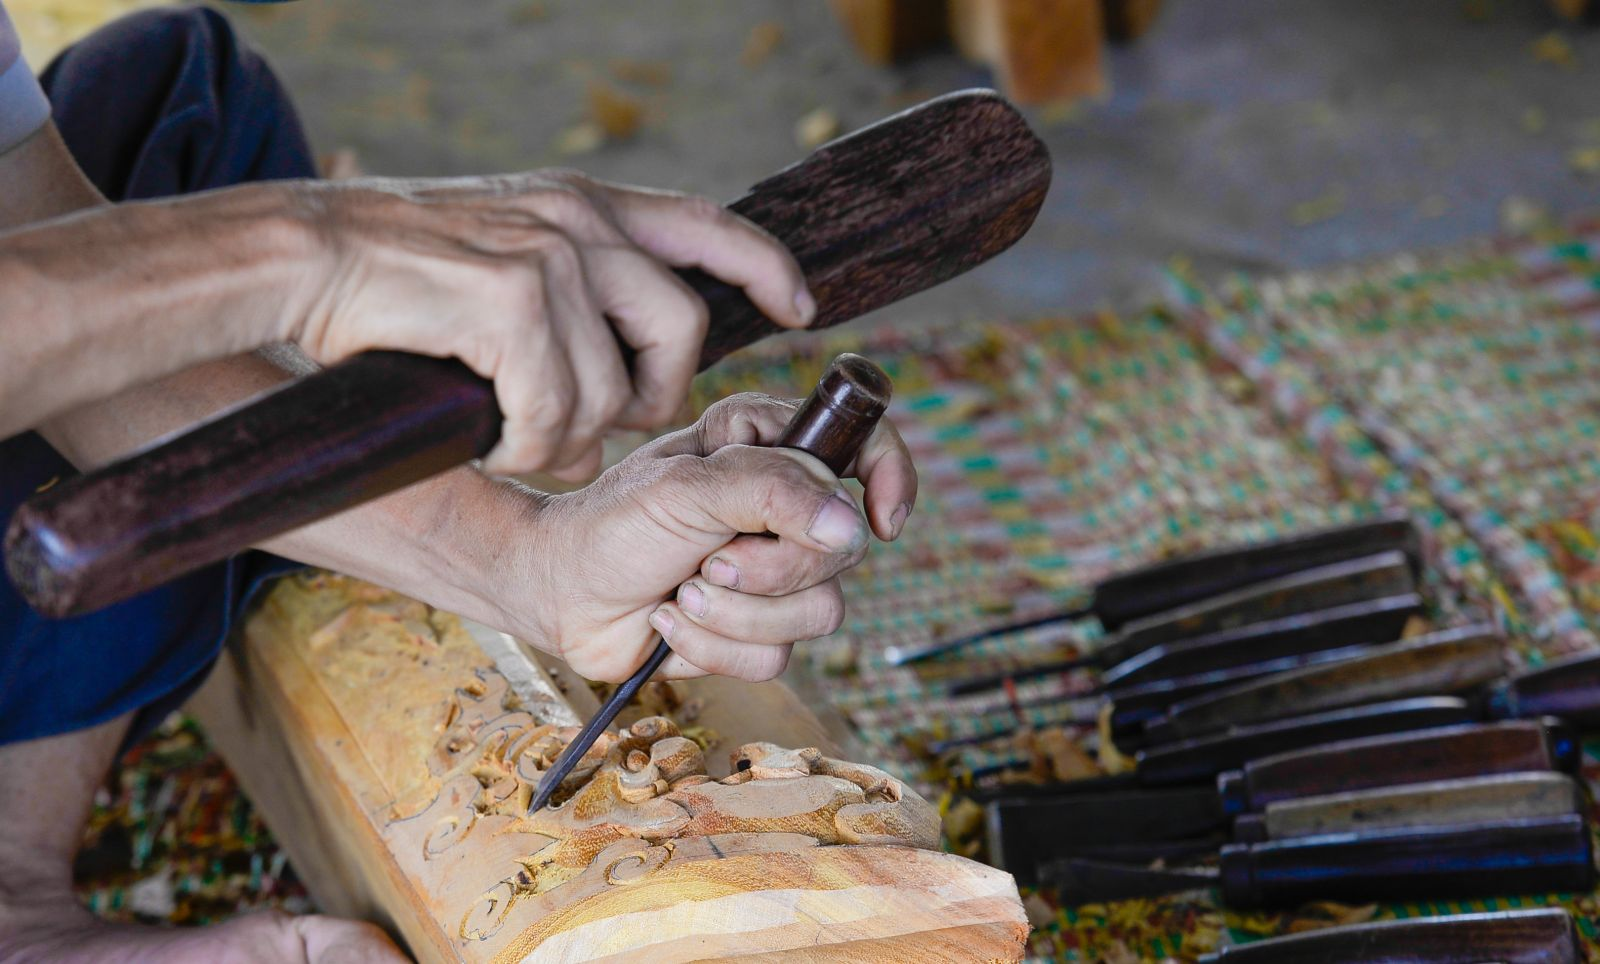 Carefully carving